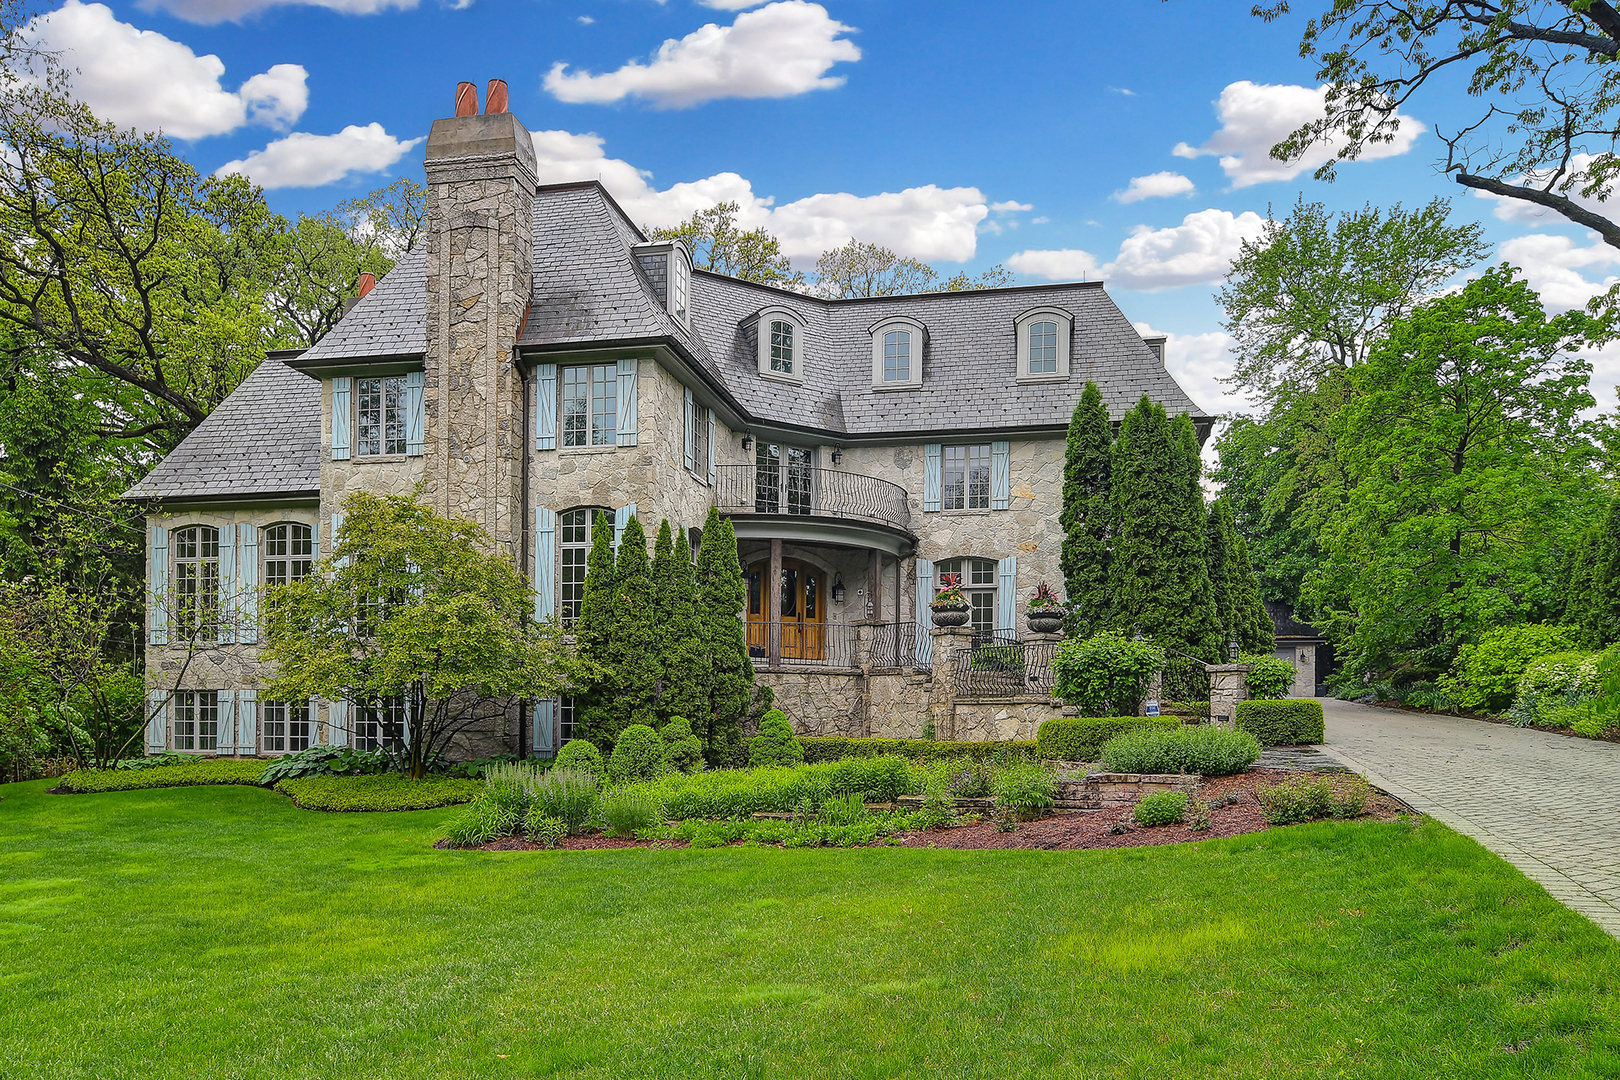 Luxury Homes For Sale In Hinsdale Illinois Hinsdale Mls